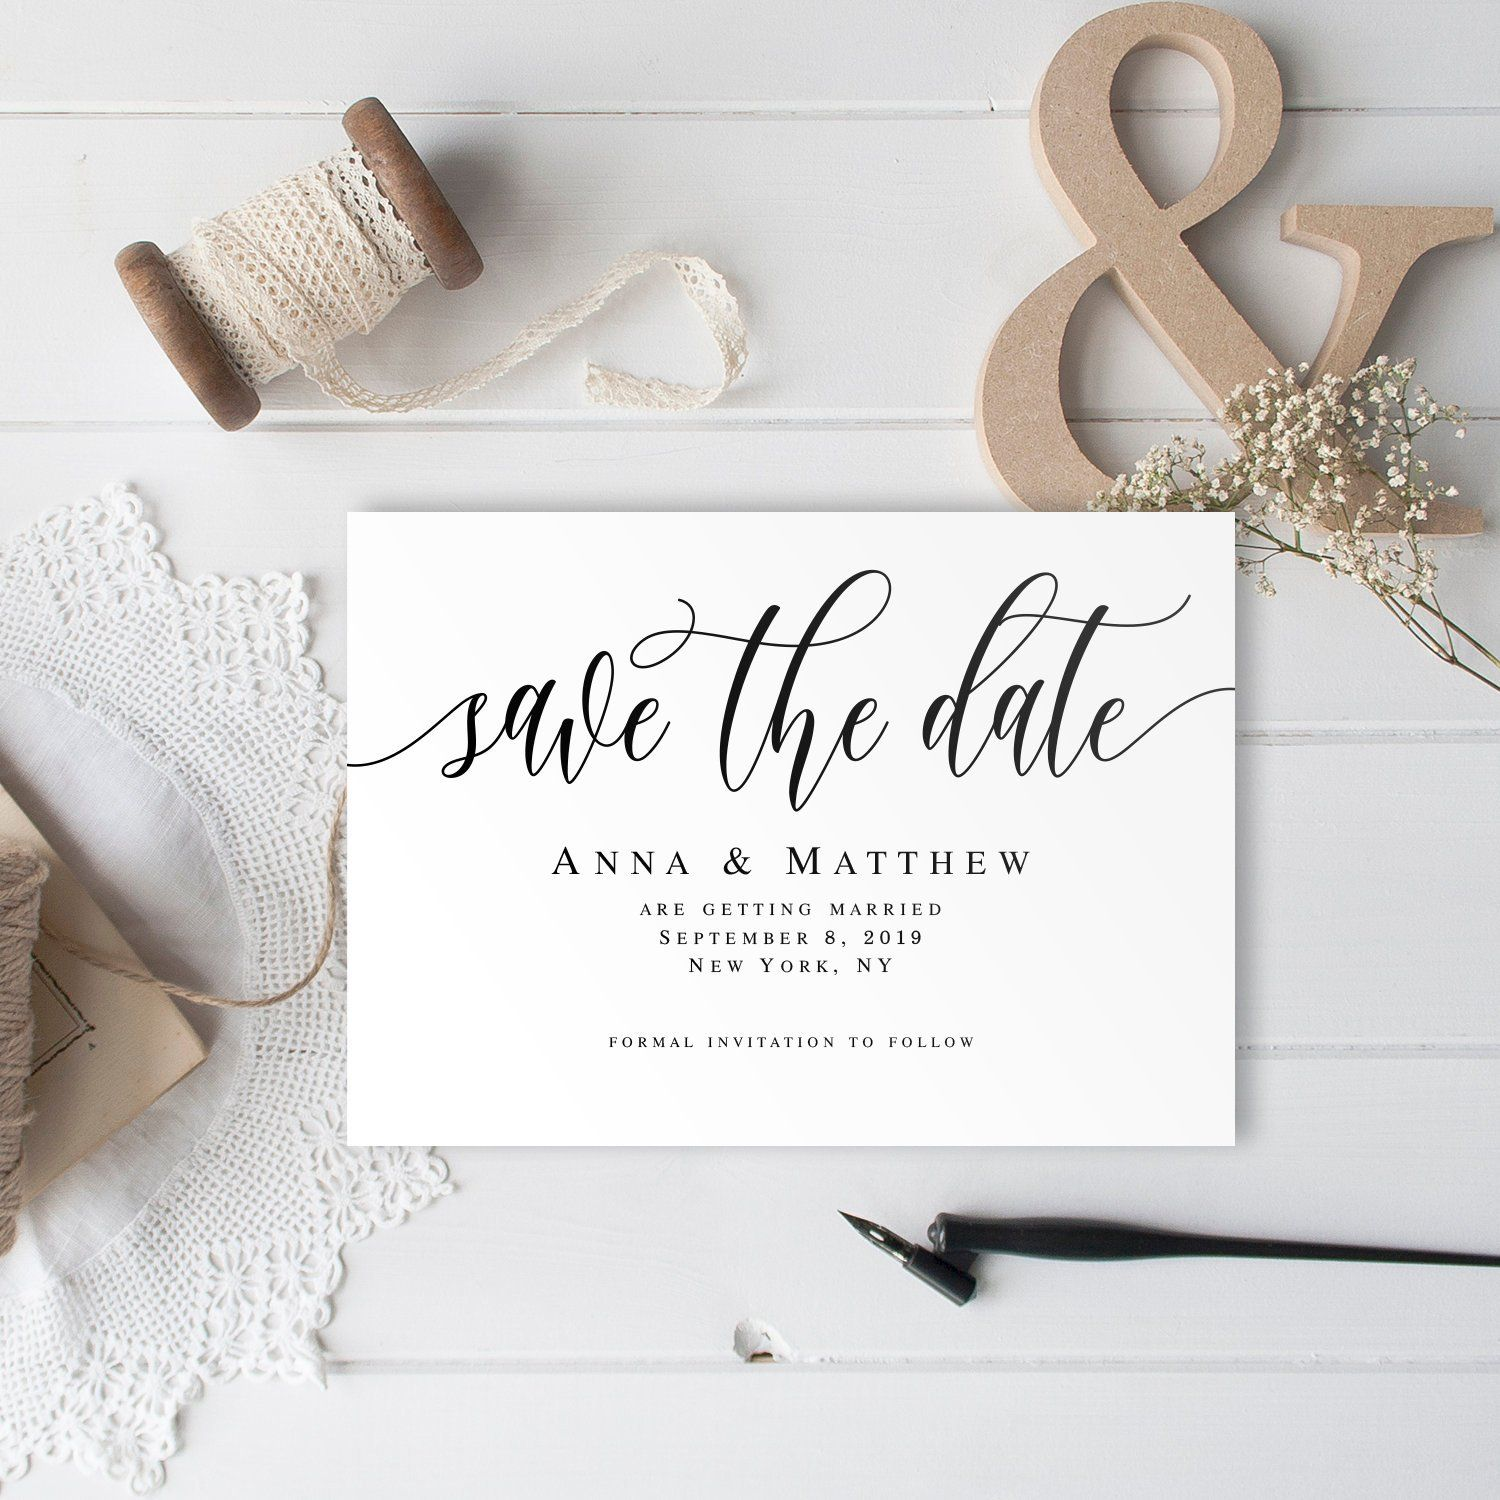 Save The Date Digital Invitation Save The Date Invite Text Etsy In 2021 Text Message Invitations Digital Invitations Save The Date Templates